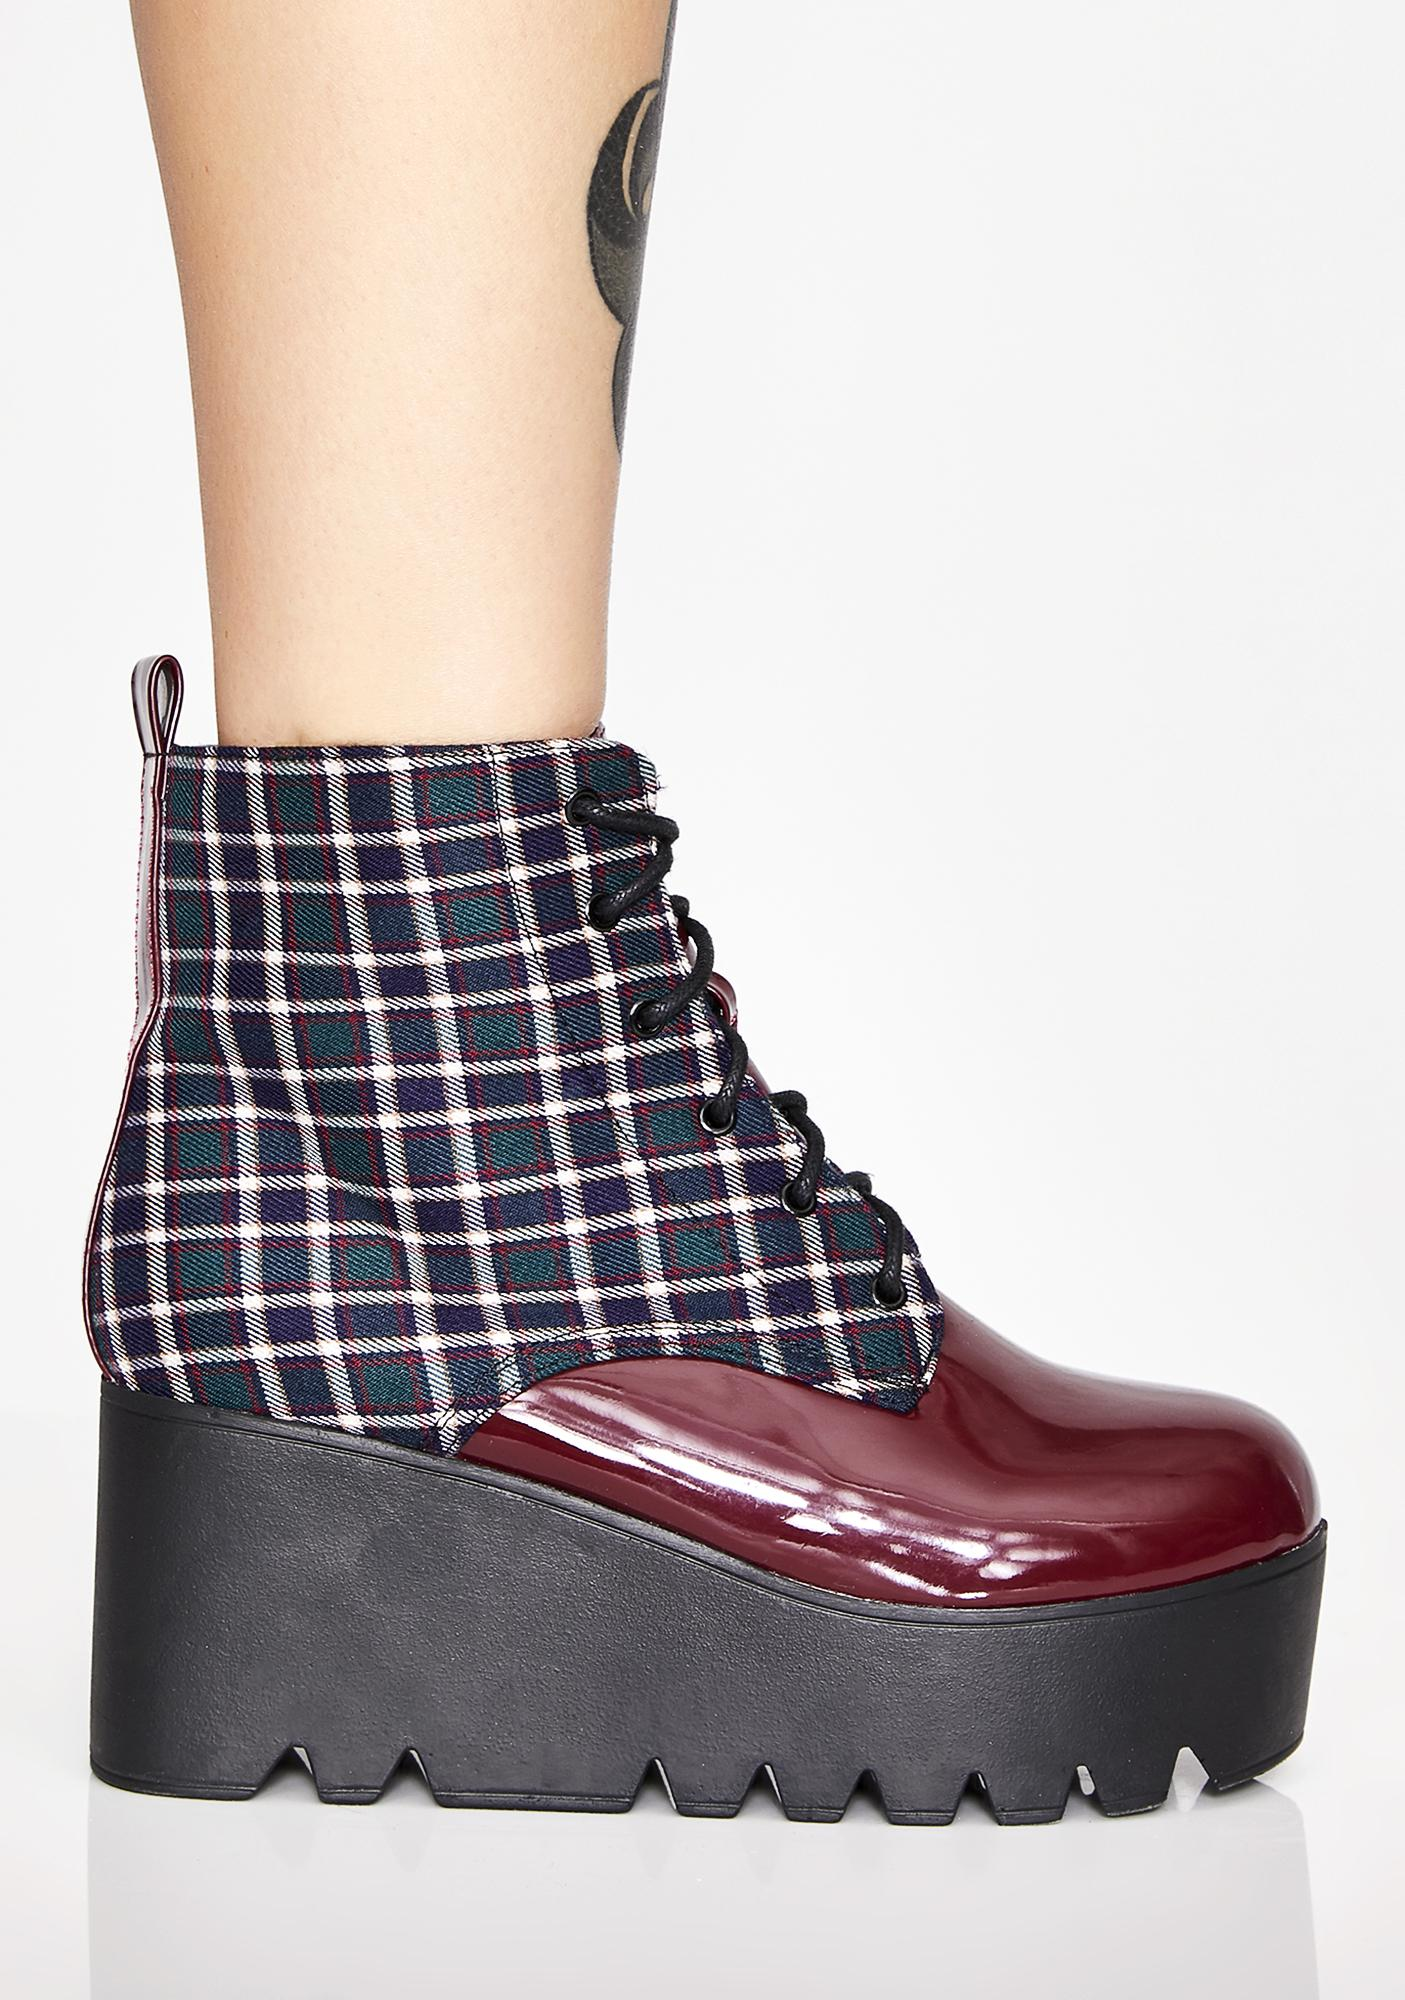 On The Grind Wedge Booties